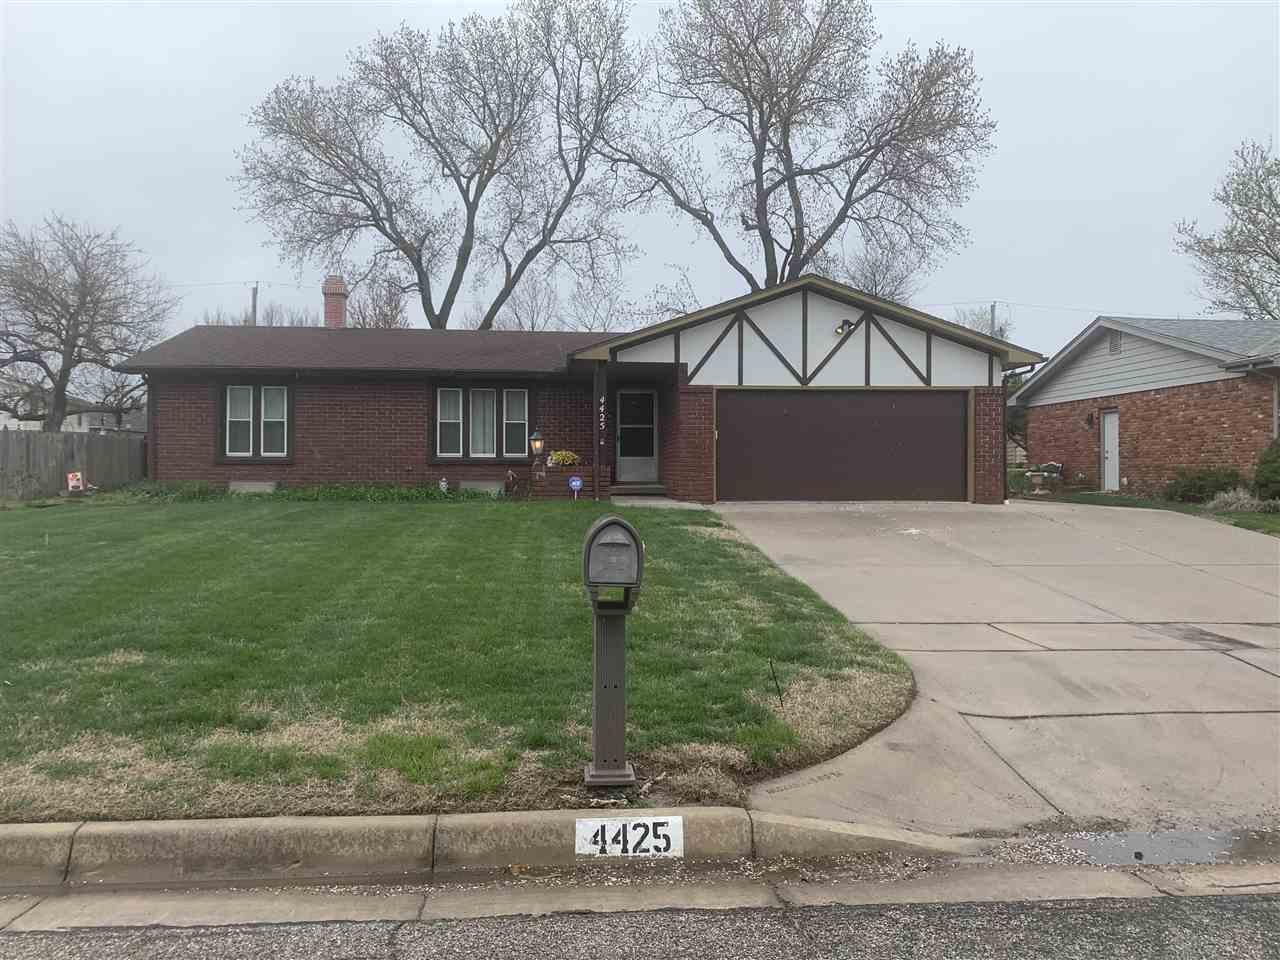 Nice ranch home with 3 bedrooms, 2 full baths, finished basement, main floor laundry. Home needs upd